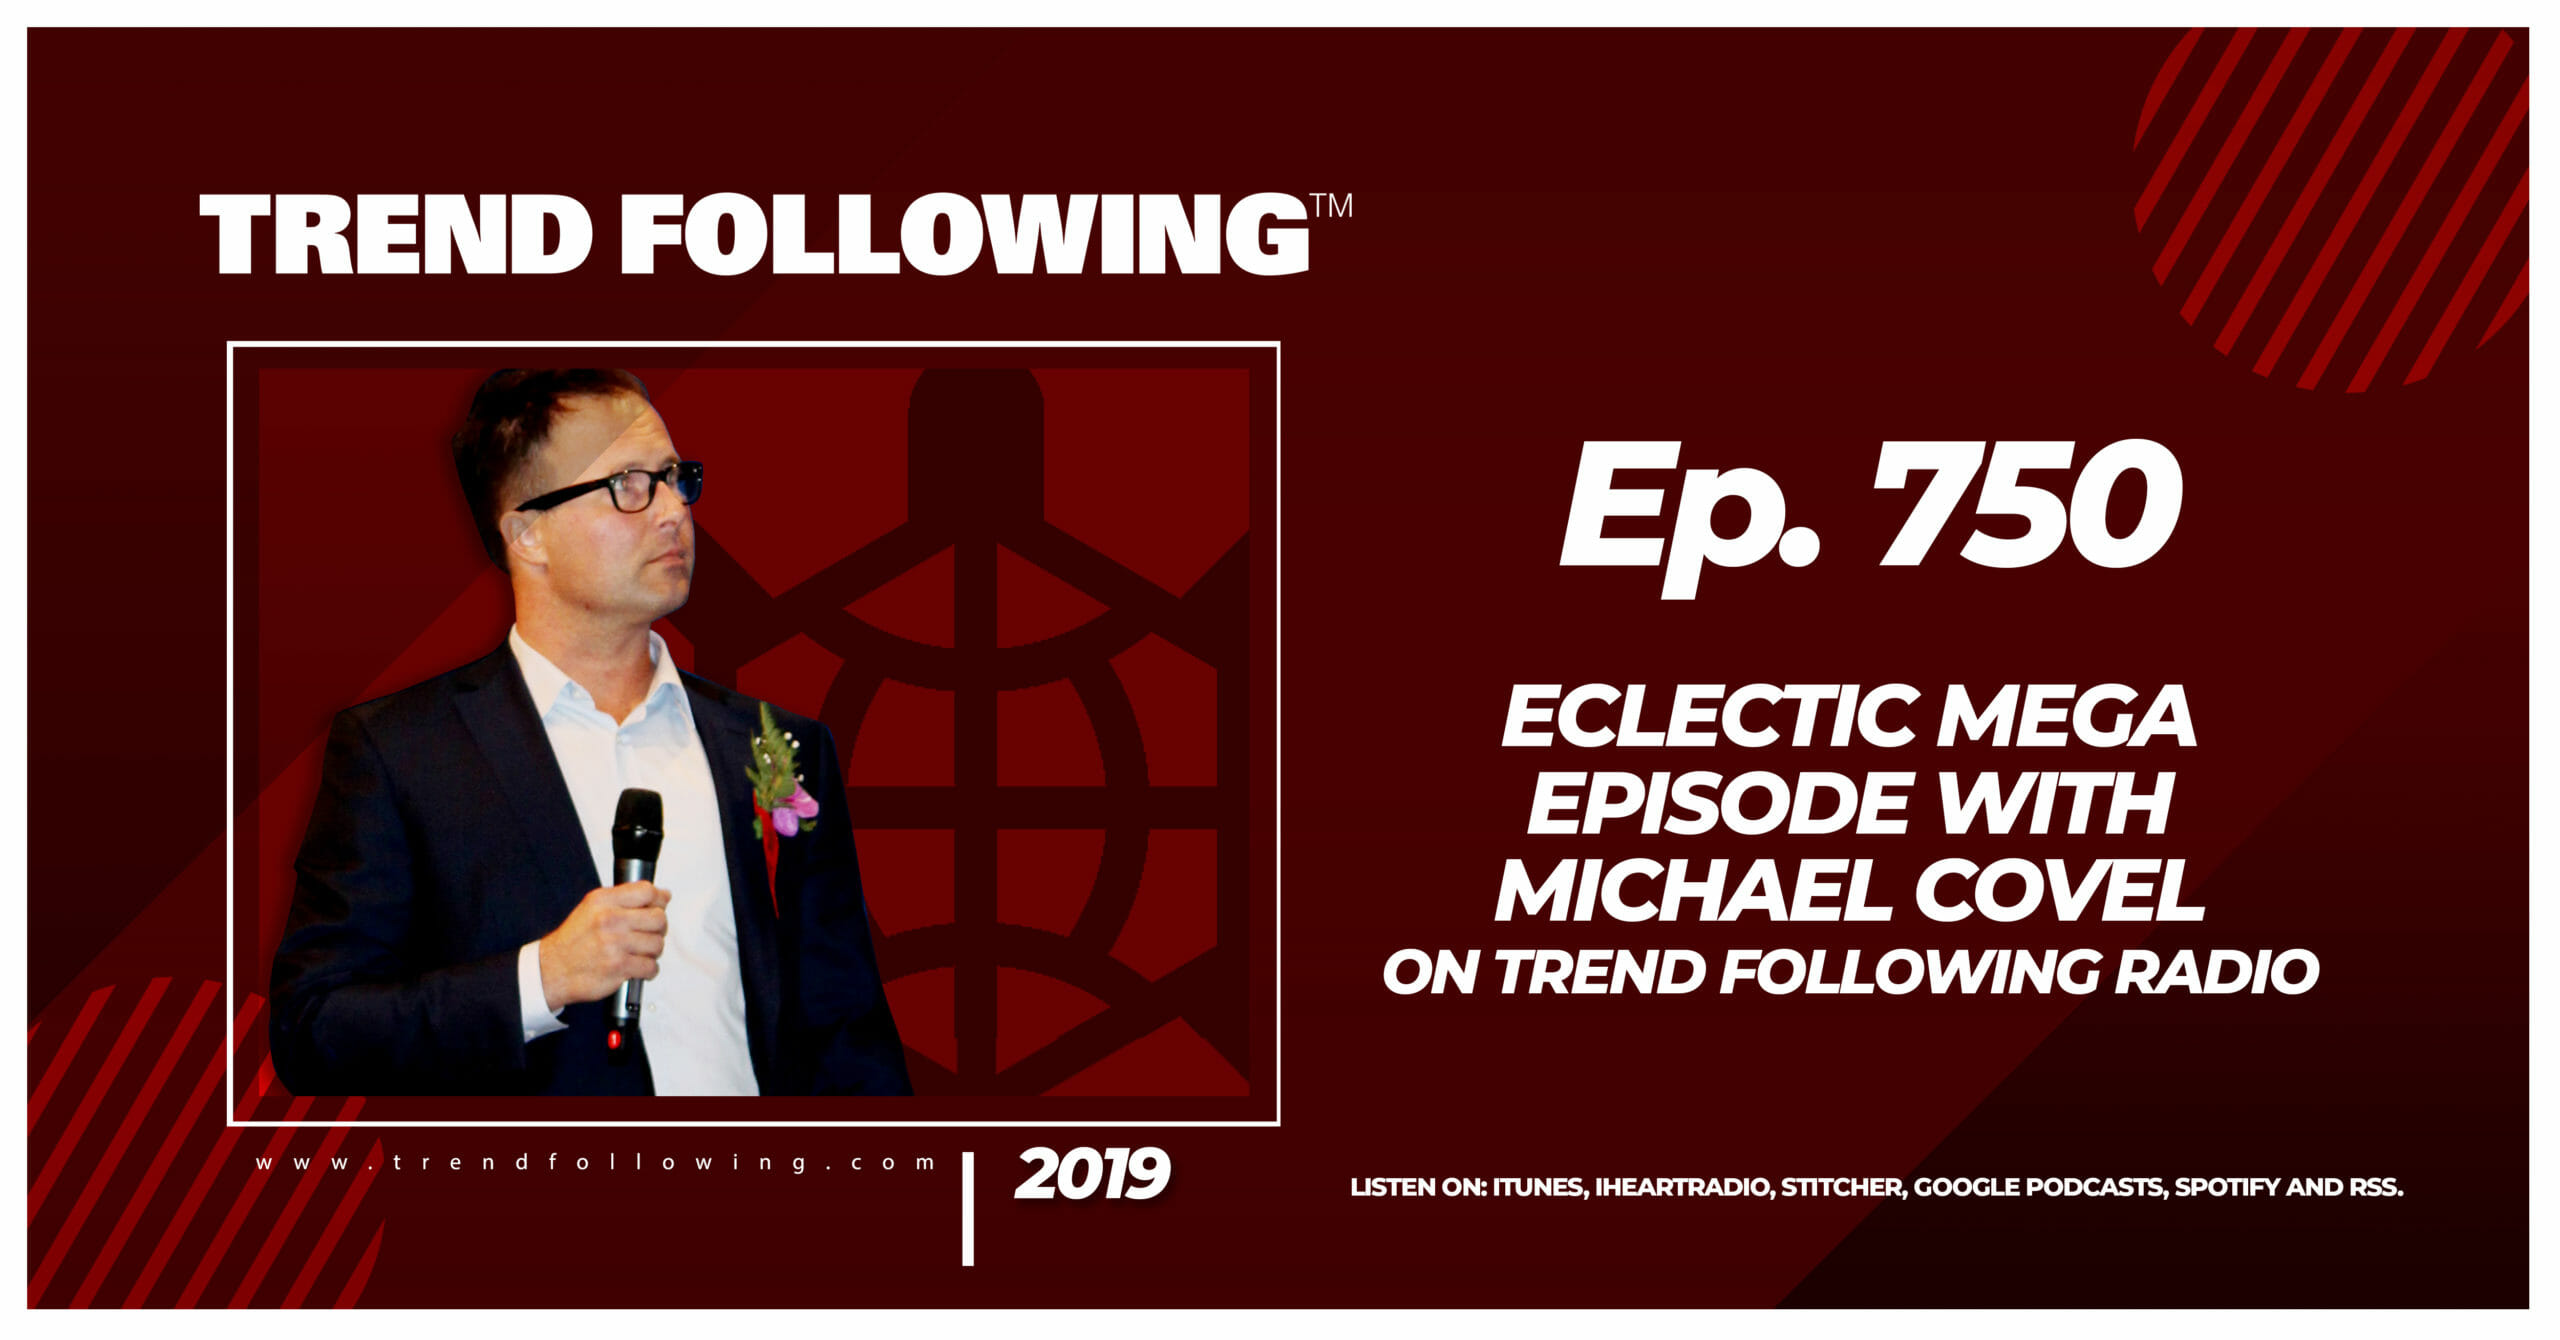 Eclectic Mega Episode with Michael Covel